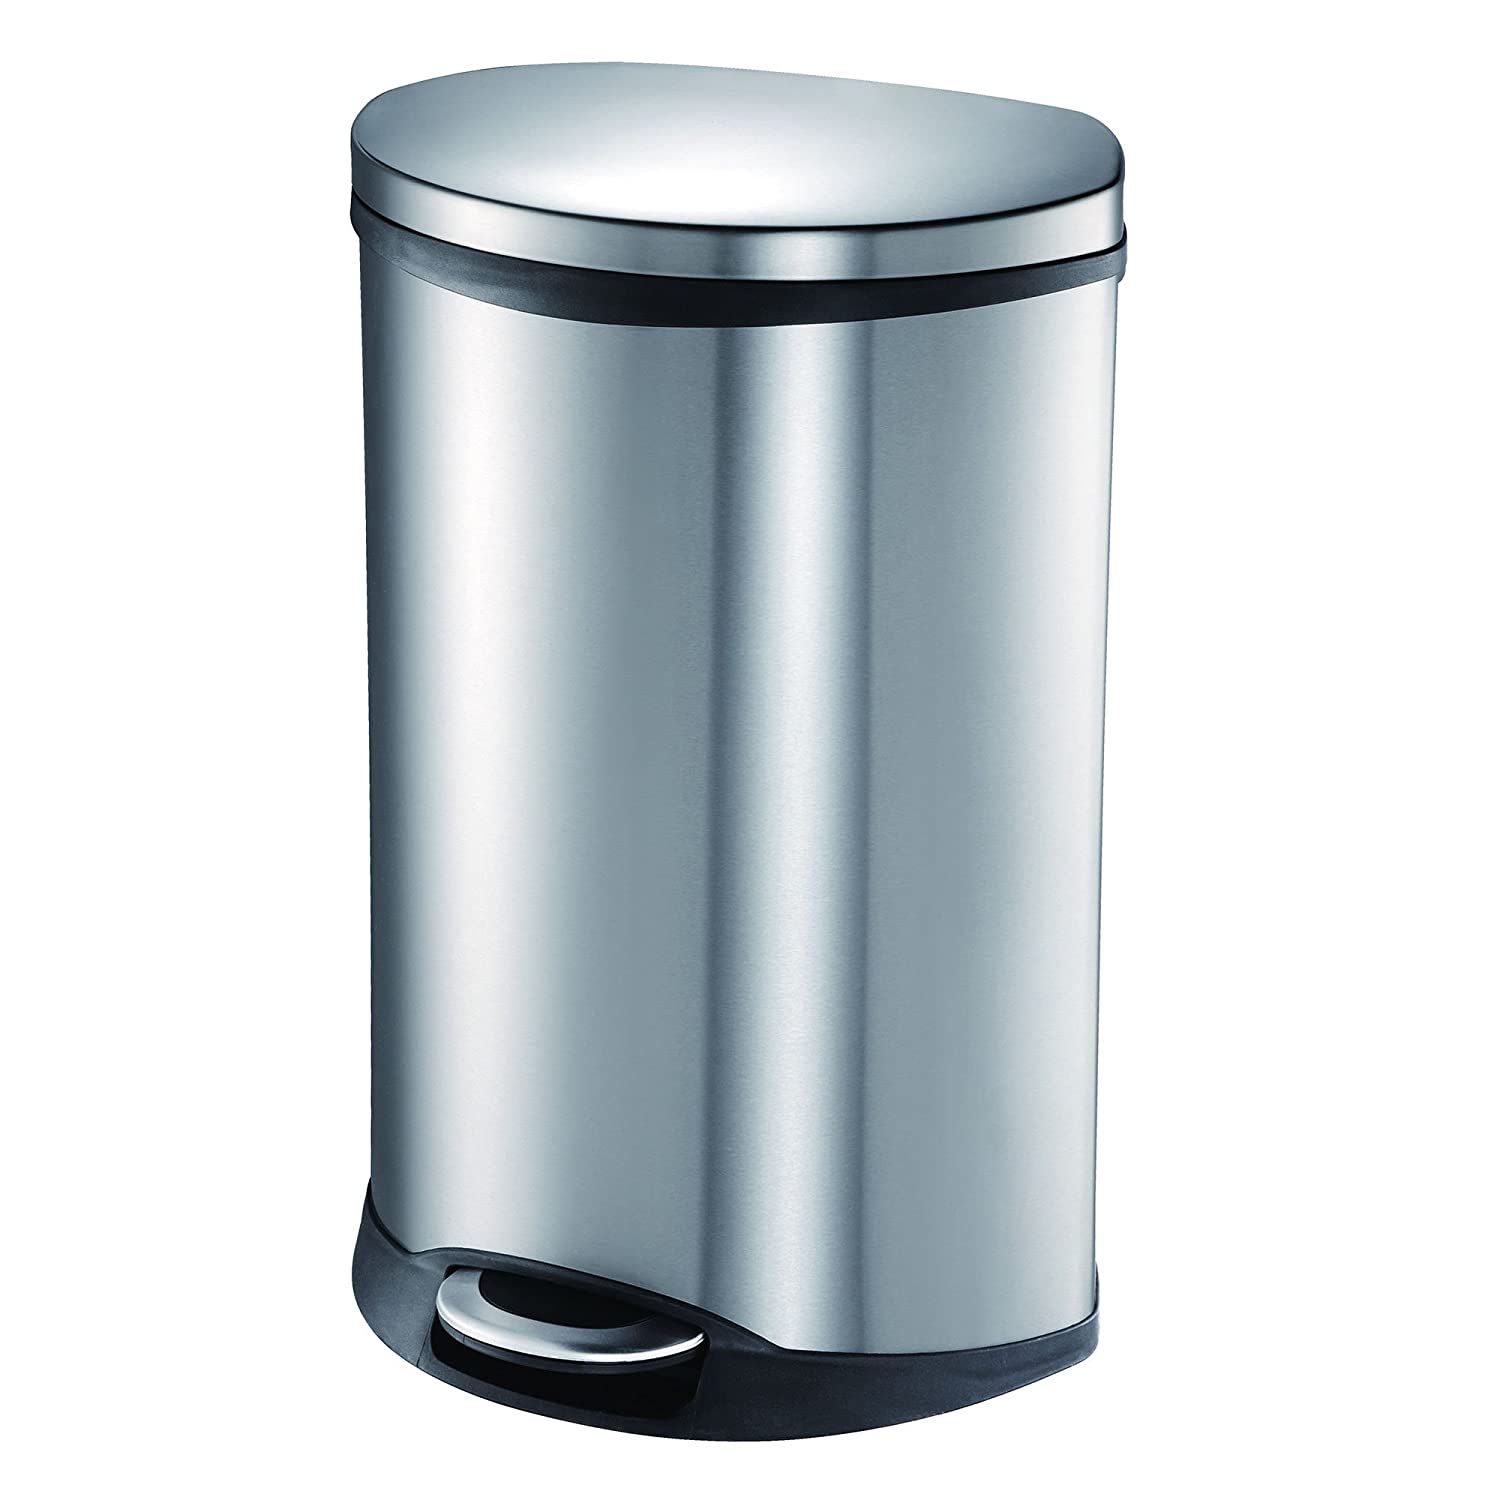 eko 1 oblong shell 13 gallon stainless steel